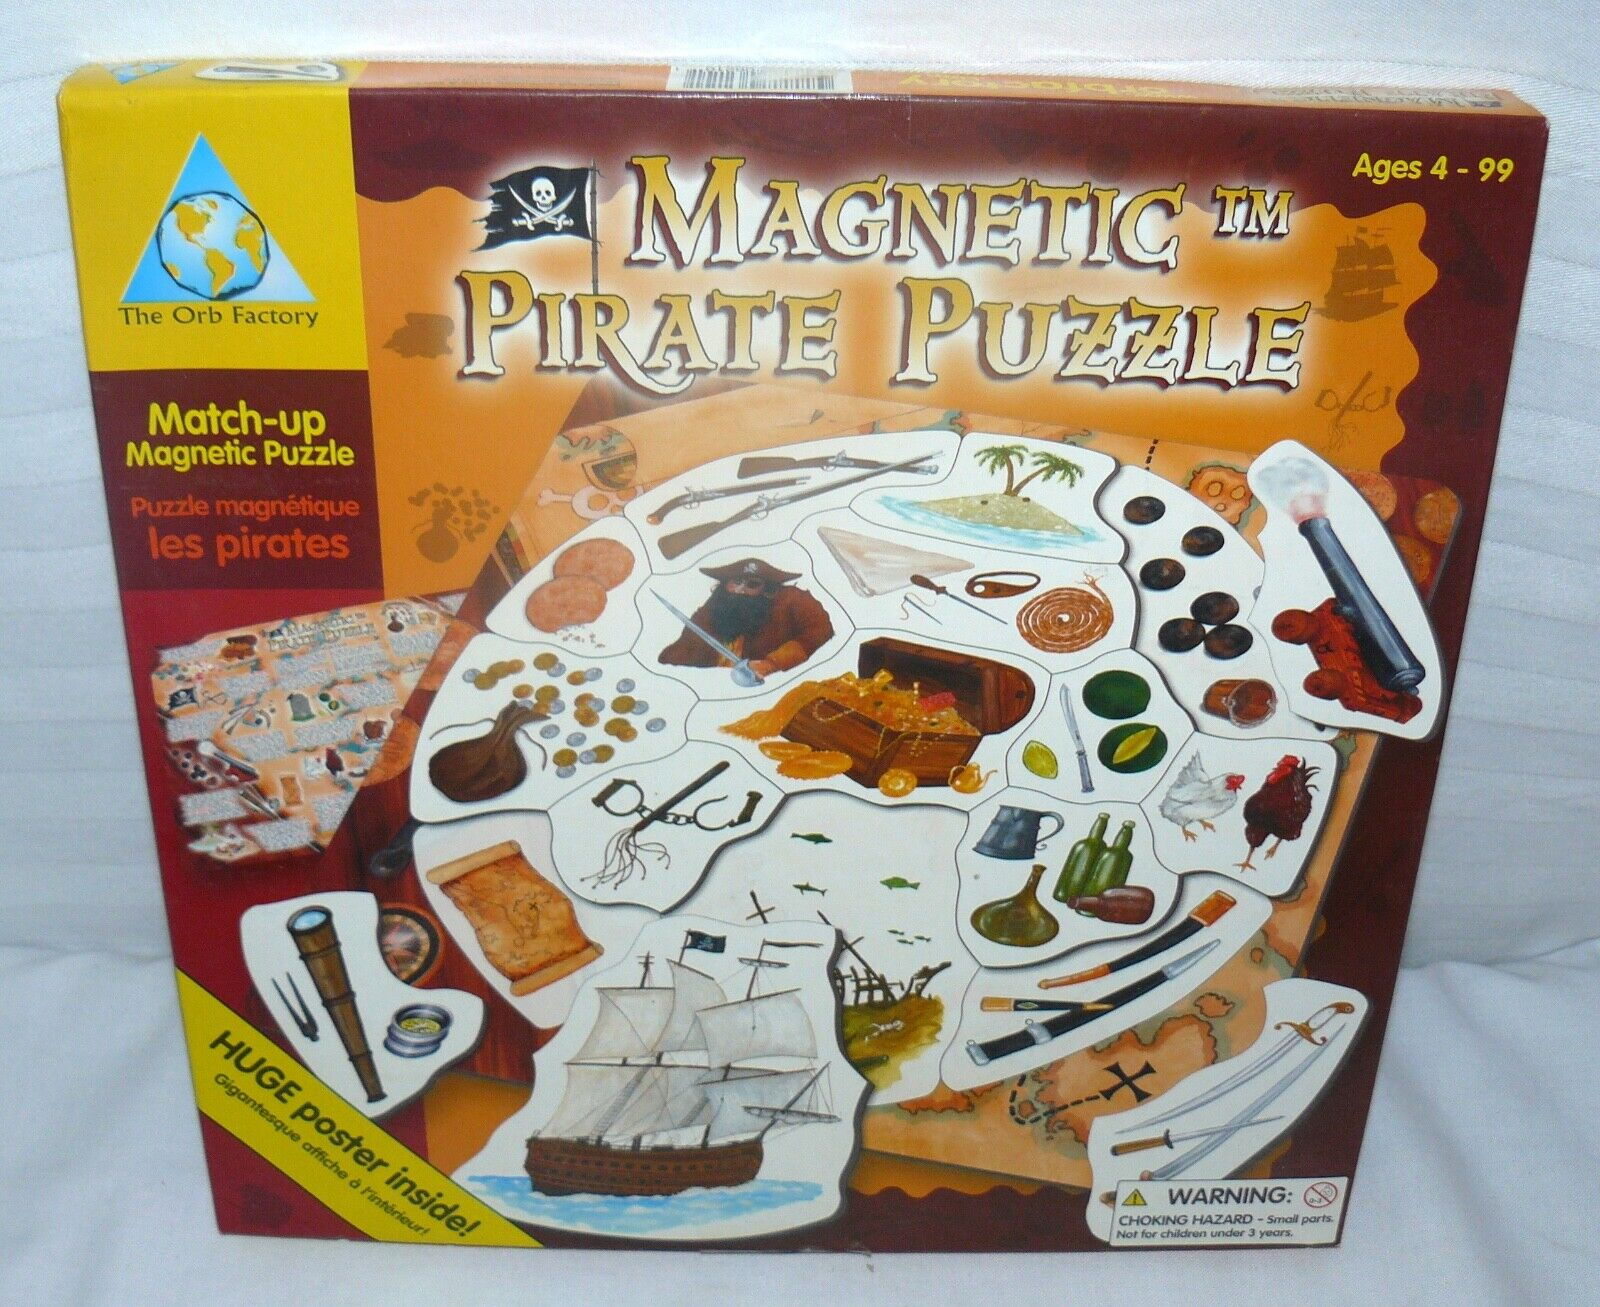 The Orb Factory Magnetic Pirate Puzzle